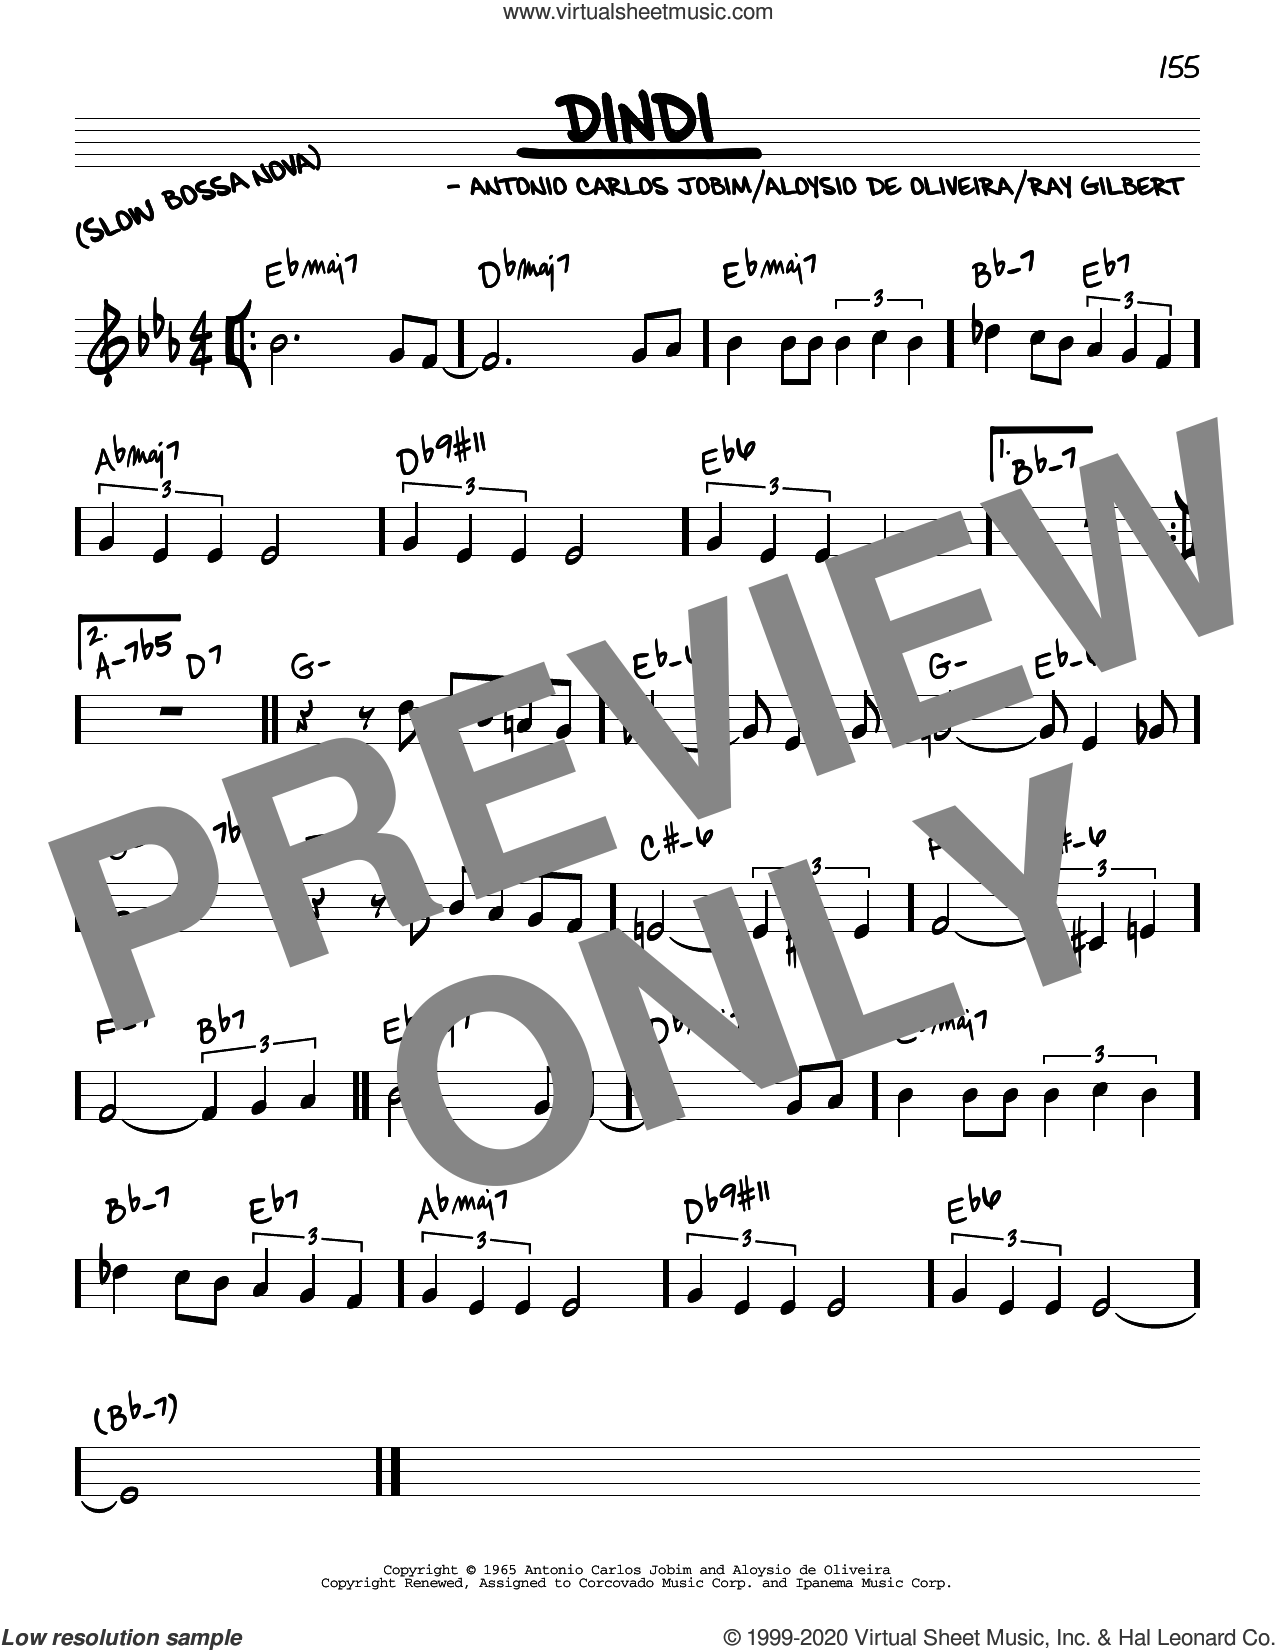 Dindi sheet music for voice and other instruments (real book) by Antonio Carlos Jobim, Aloysio de Oliveira and Ray Gilbert, intermediate skill level